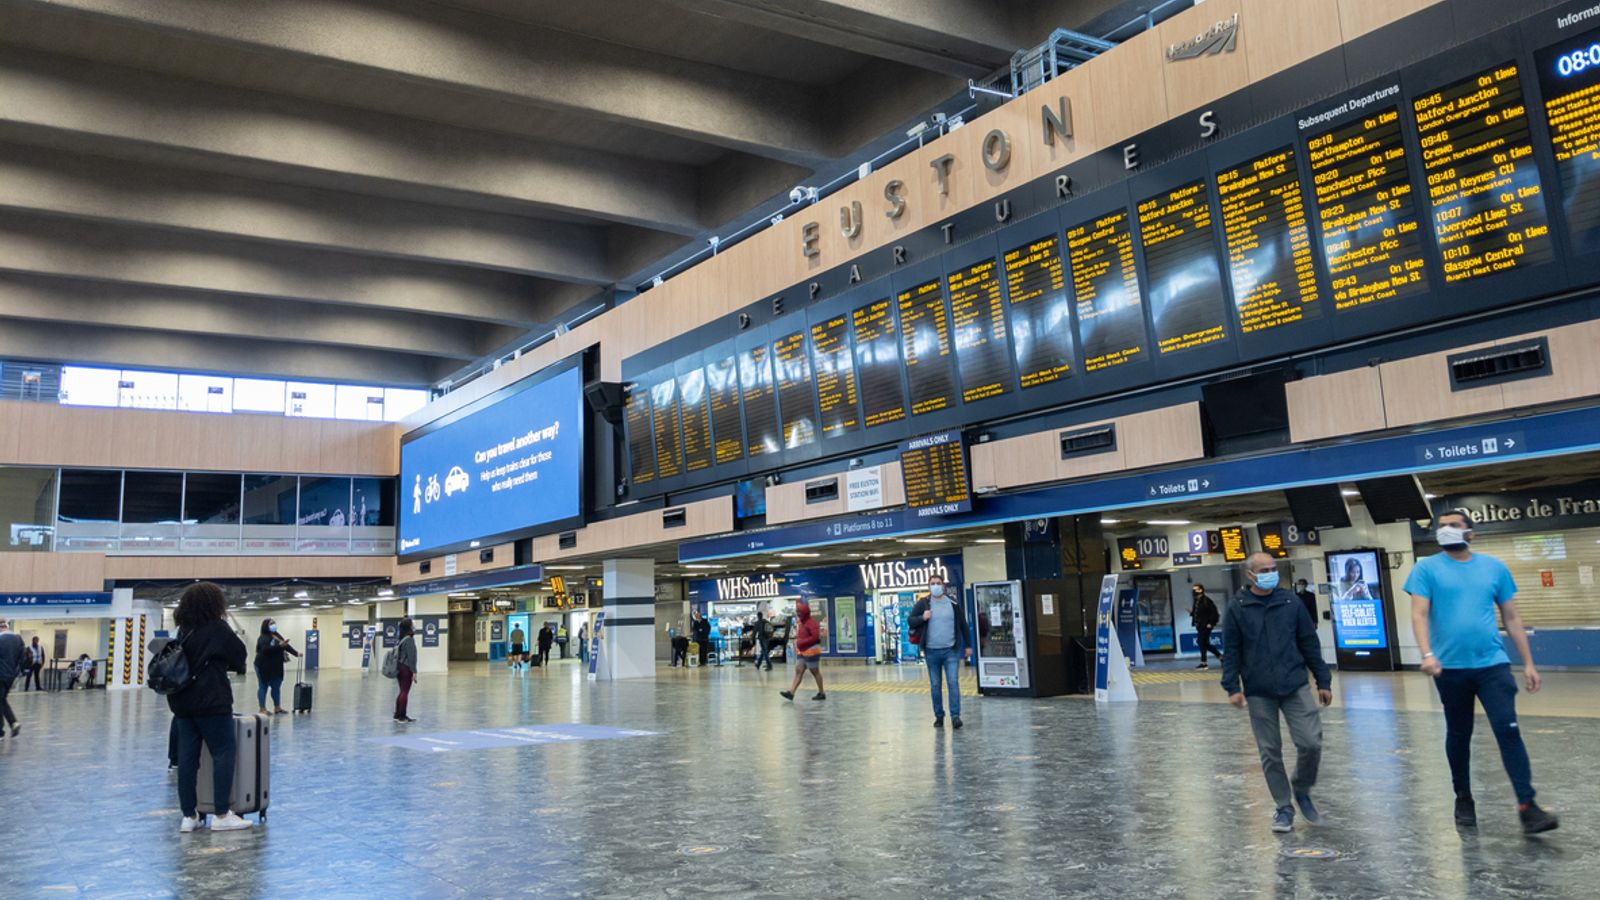 COVID-19: Tests at England's major railway stations and on trains reveal no traces of coronavirus